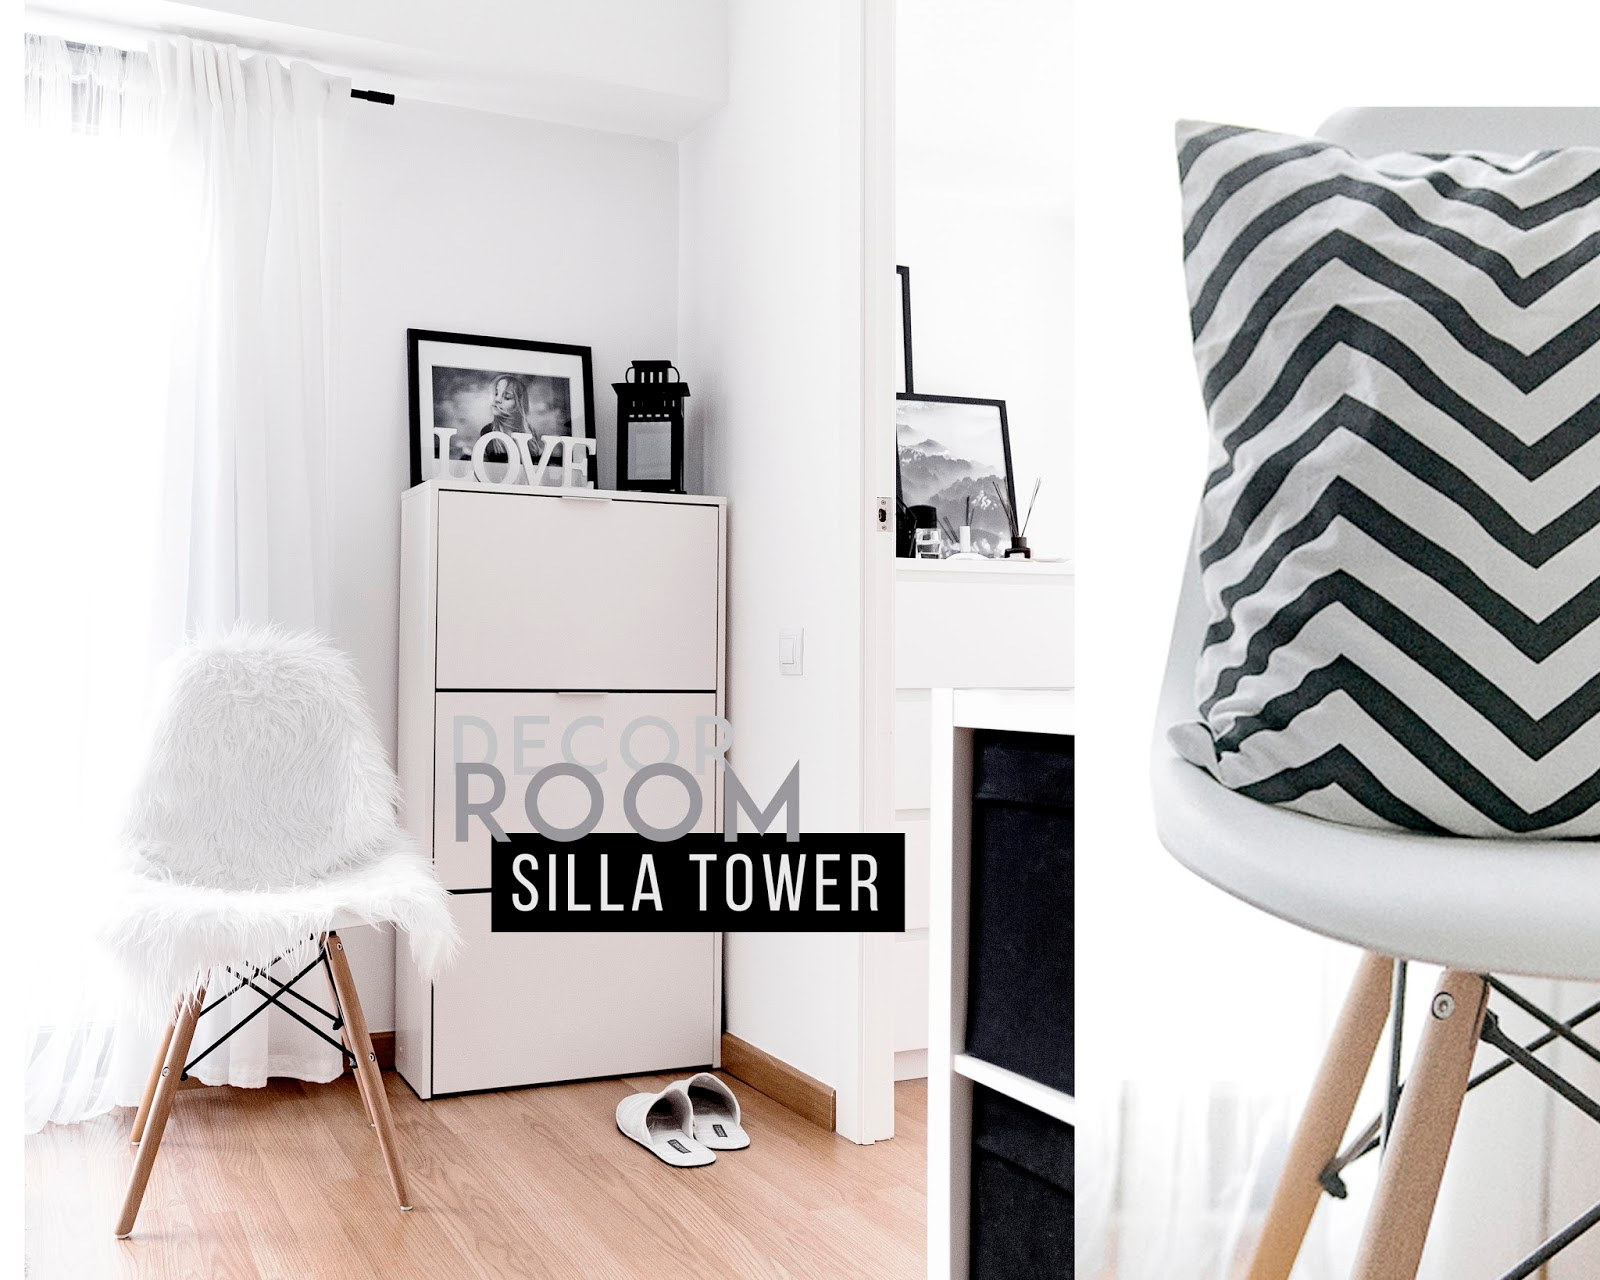 Silla Charles Eames Silla Tower Charles Eames Dsw Review Iry Luna Blog